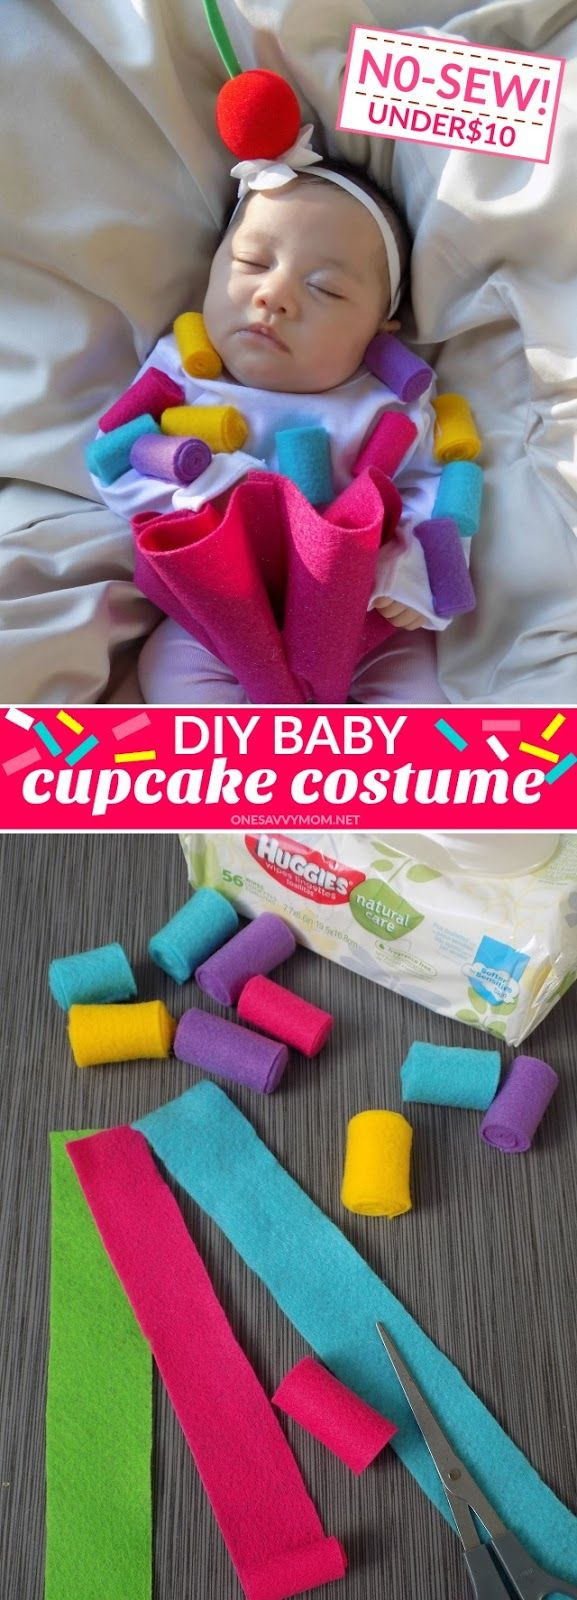 No-Sew DIY Baby Cupcake Costume Tutorial - Perfect For Baby's First Halloween  #BackToBabyBasics #ad